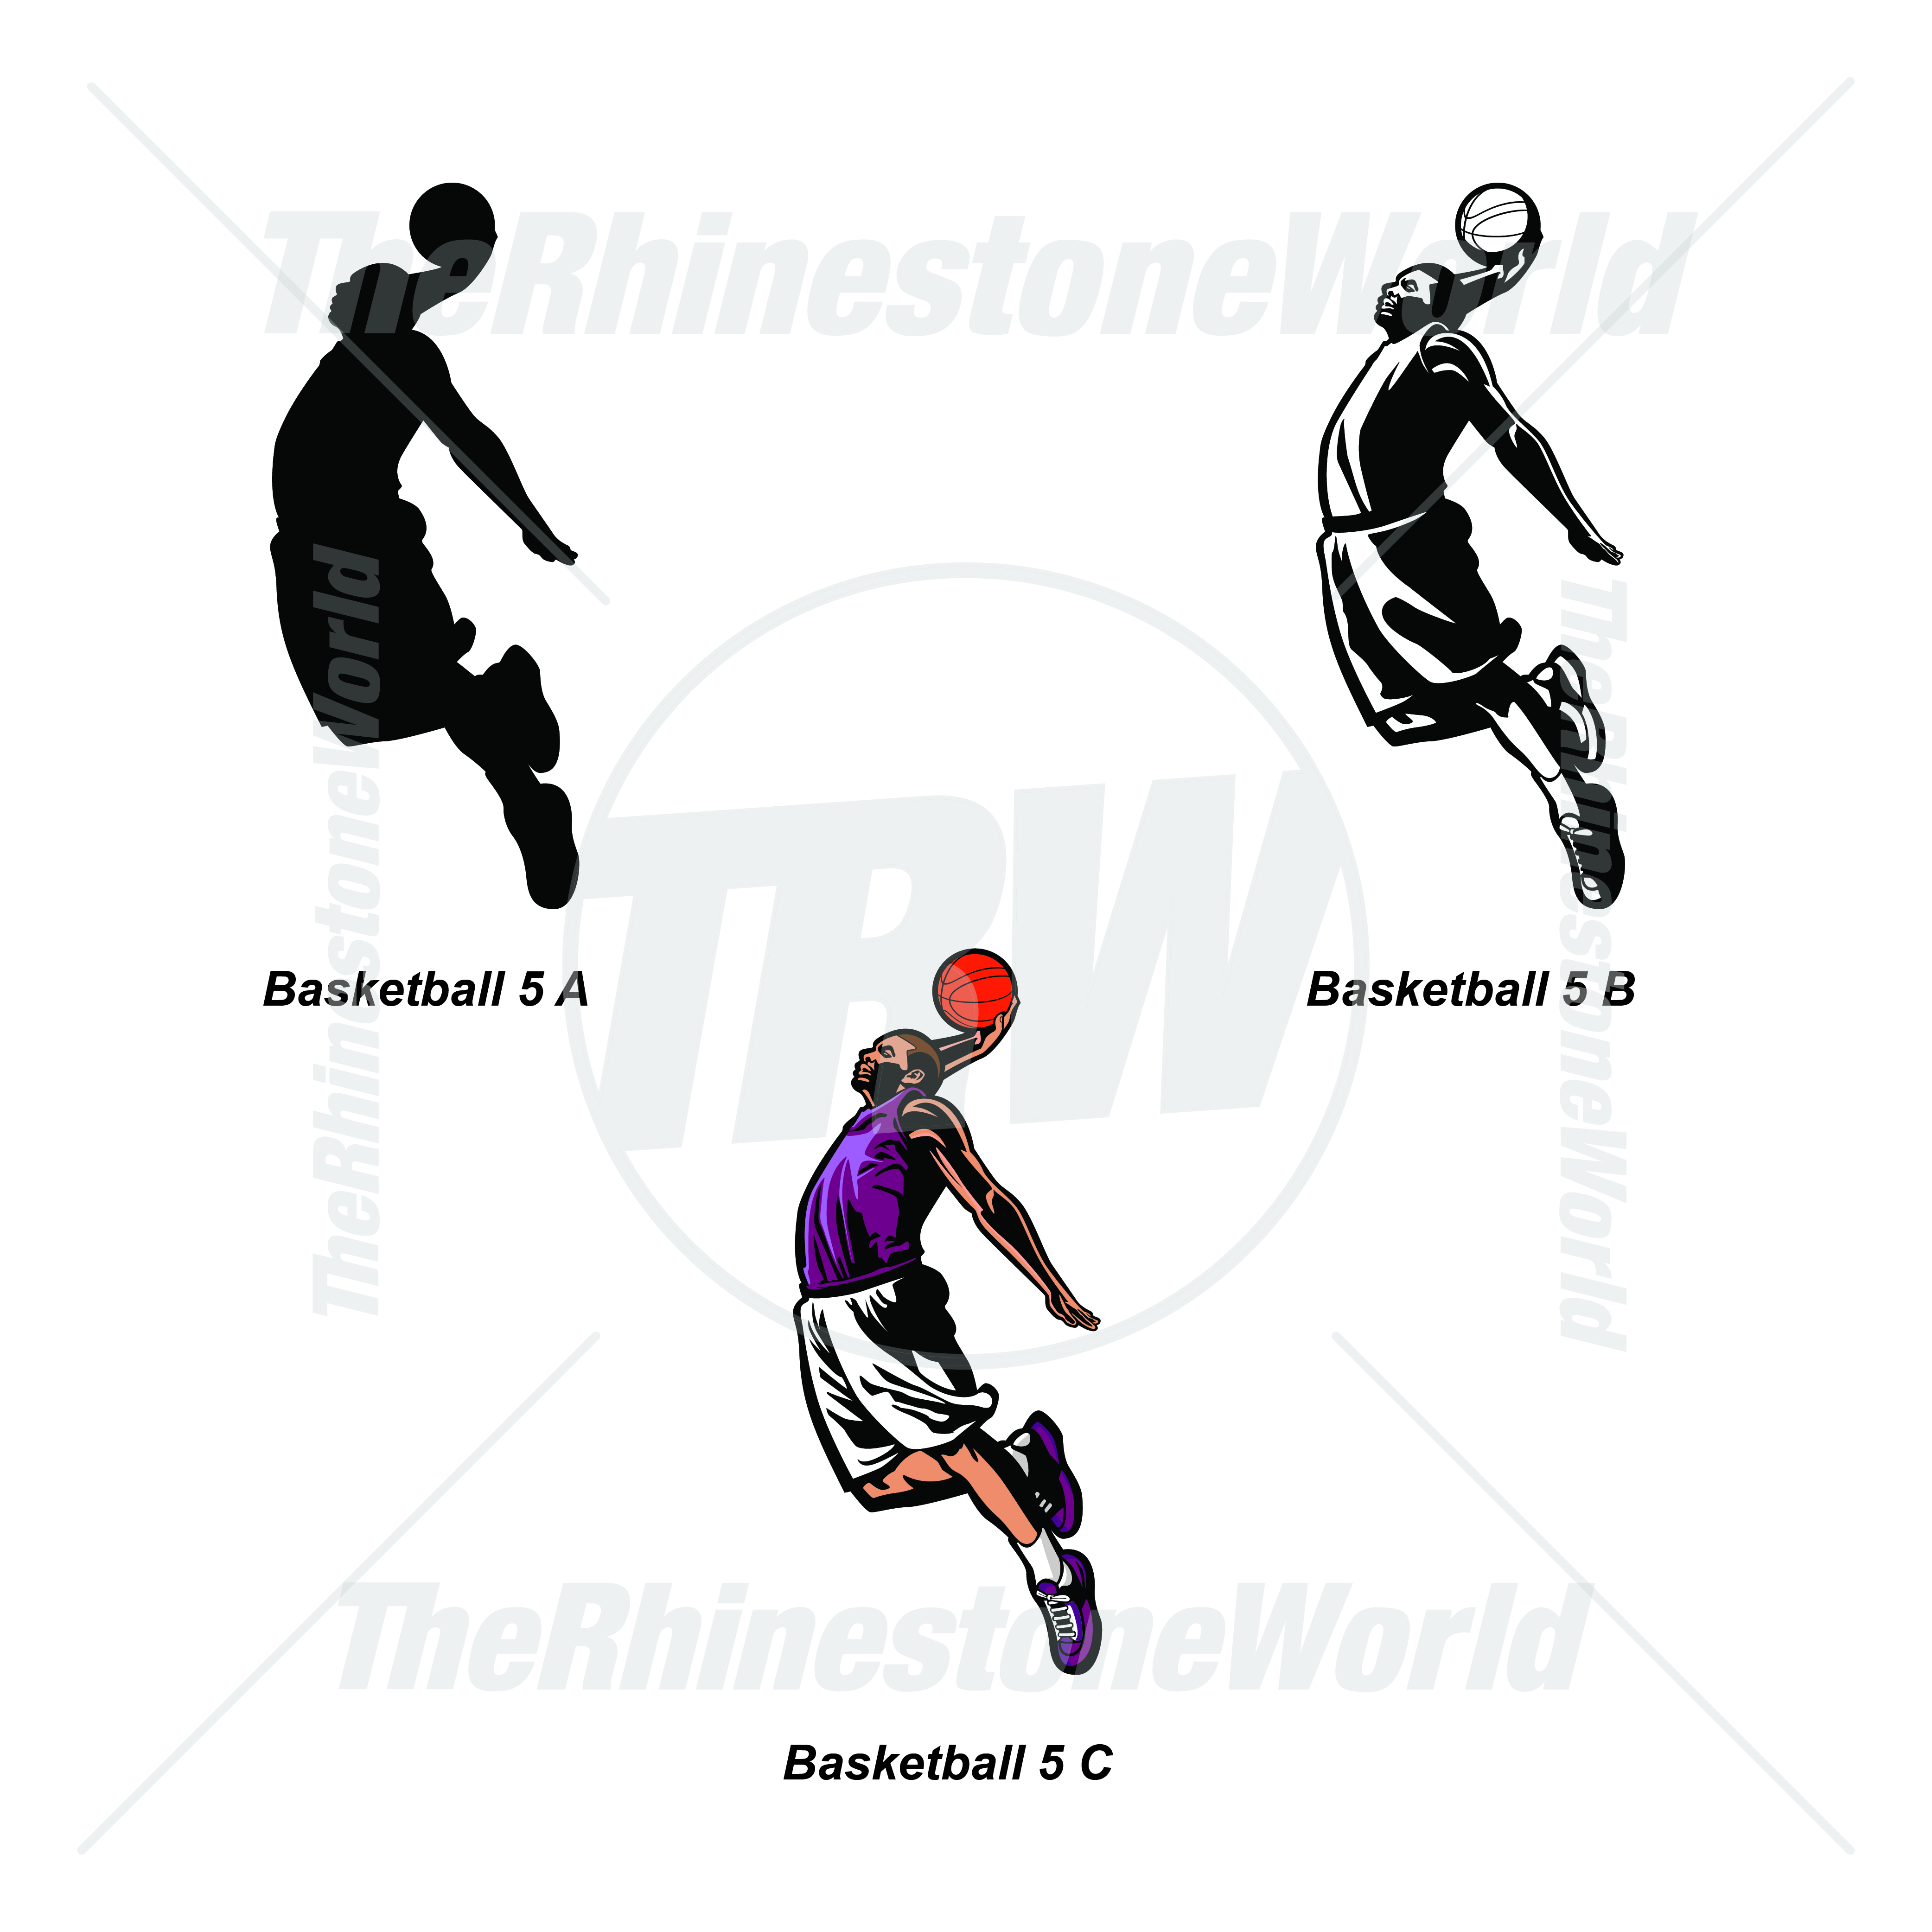 Sports Player Pack Basketball 5 - Download